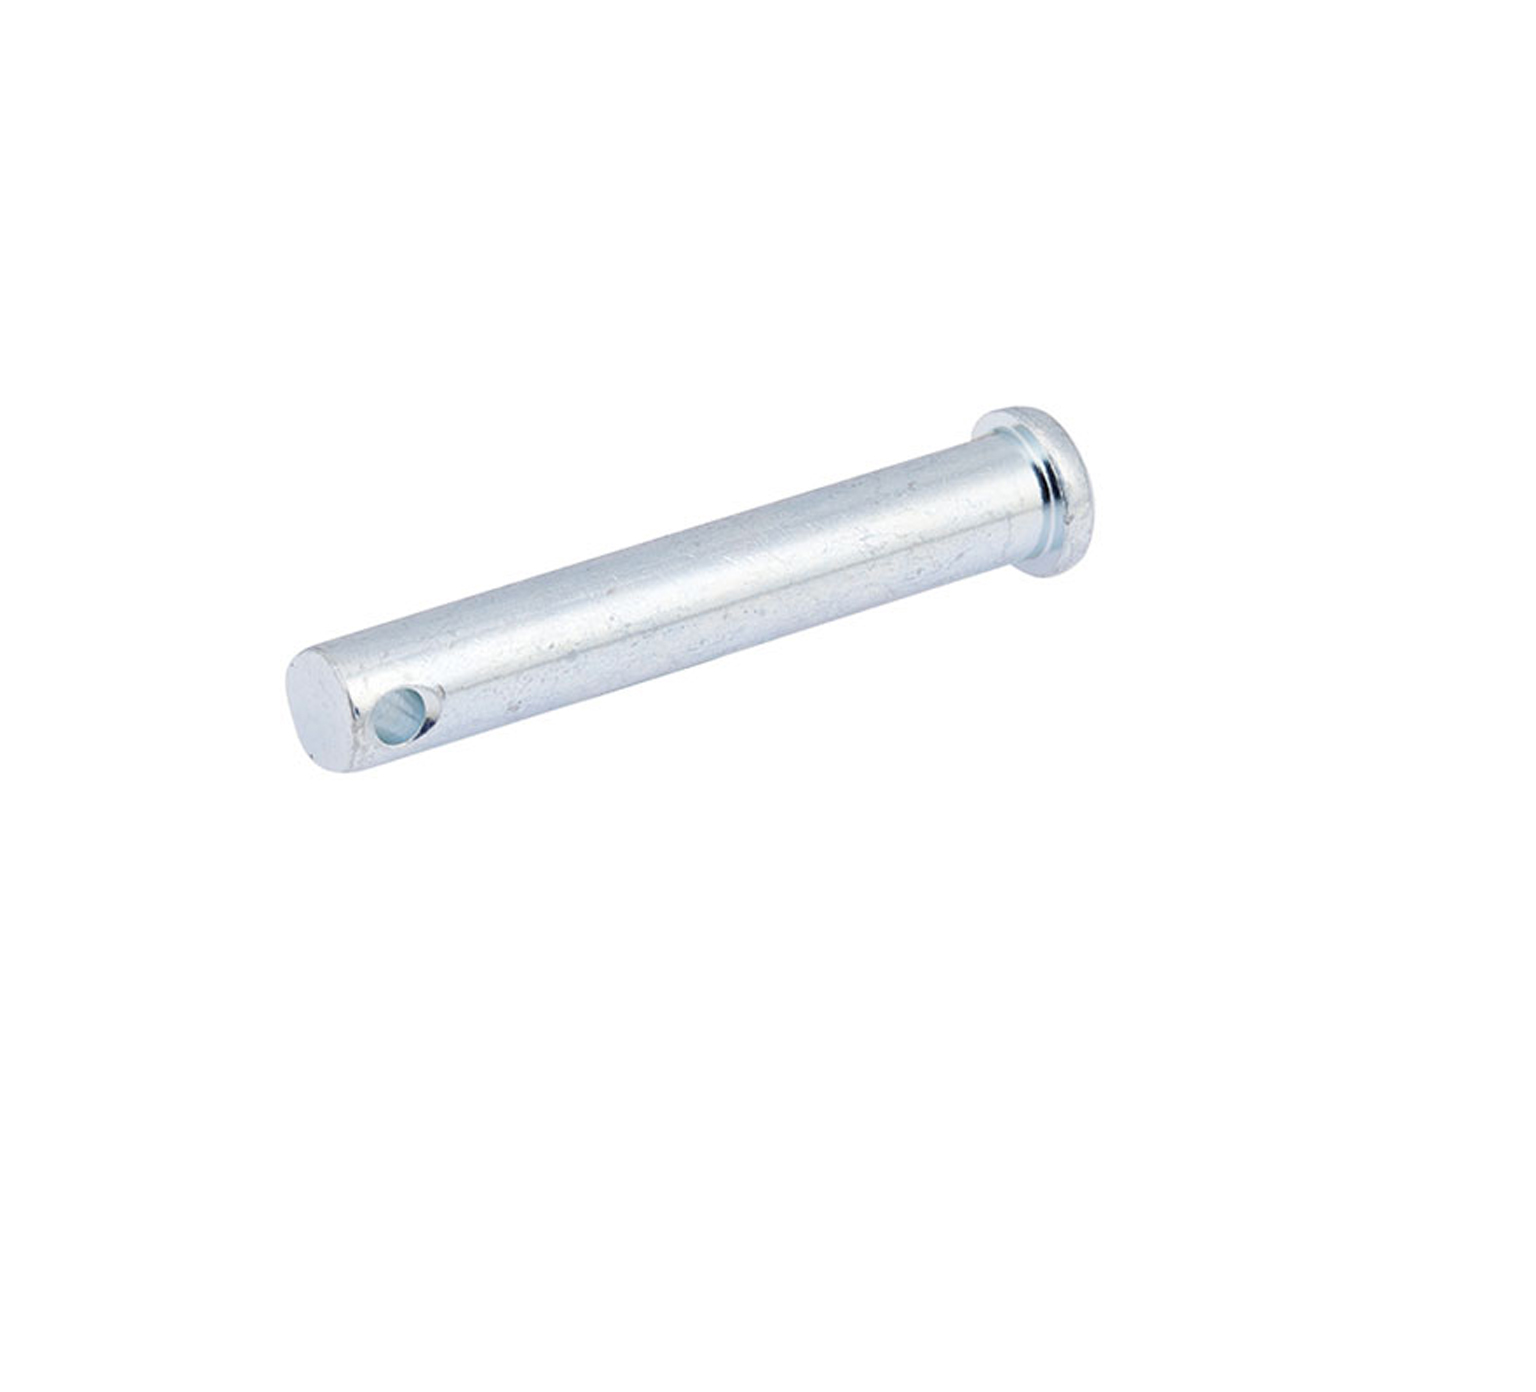 222260 Steel Clevis Pin - 0.5 x 2.75 in alt 1